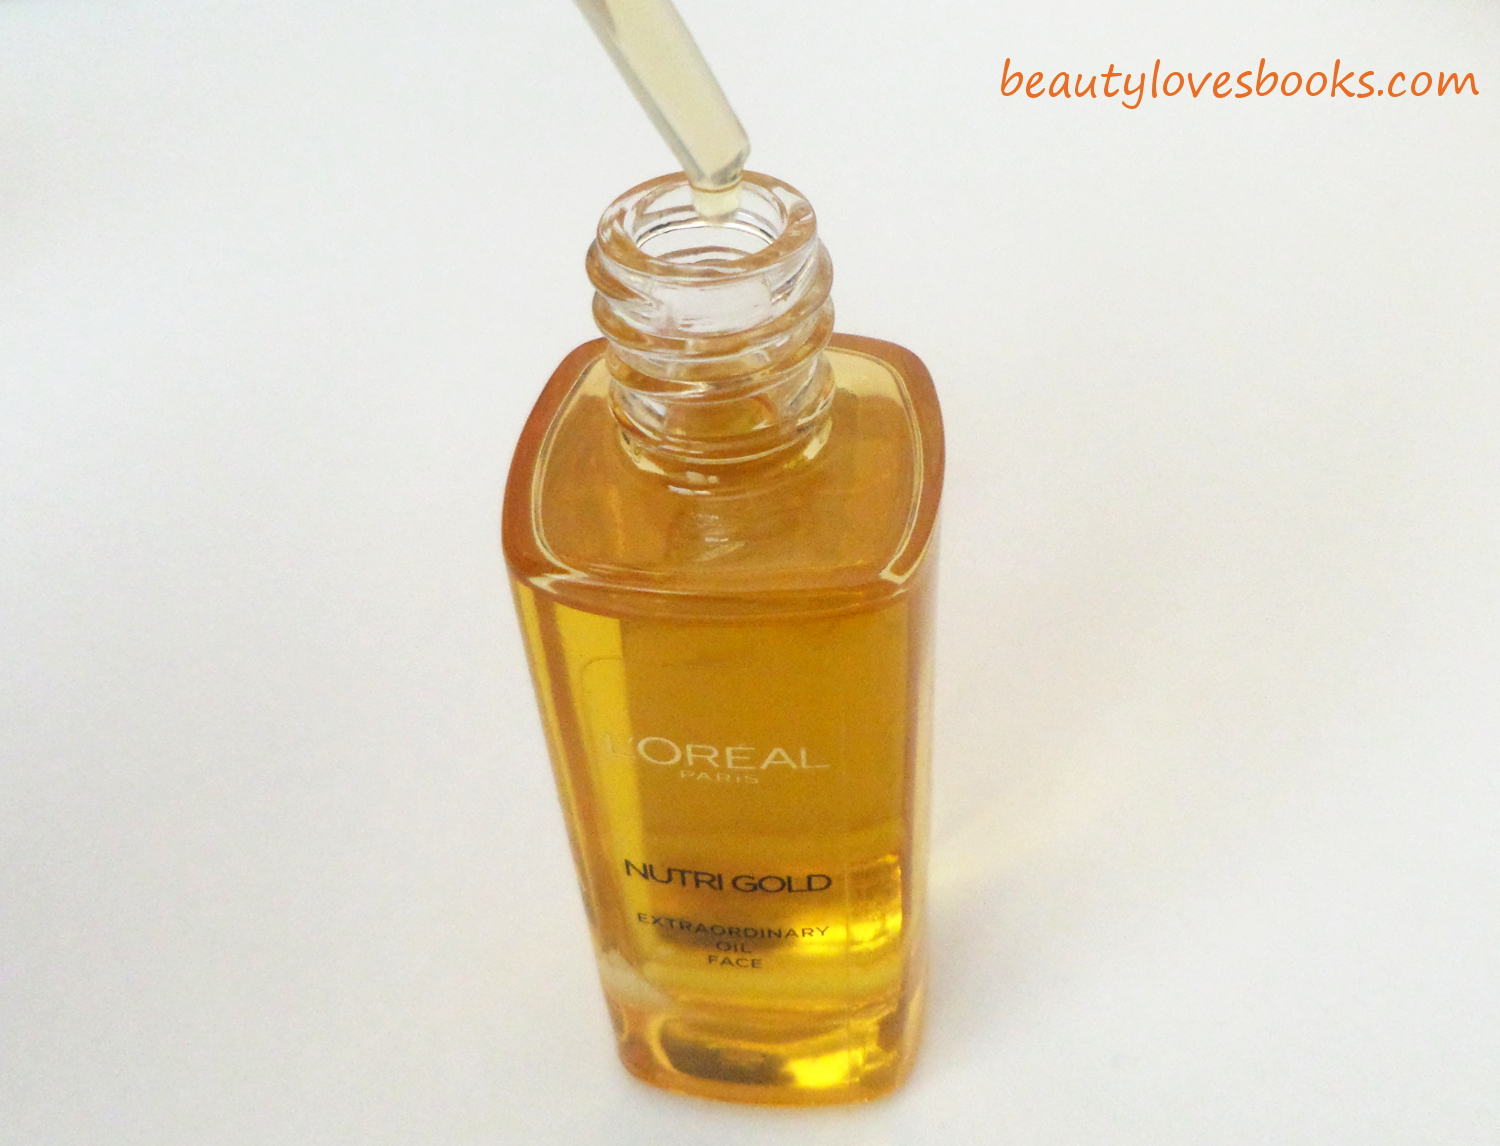 L'oreal Nutri Gold oil